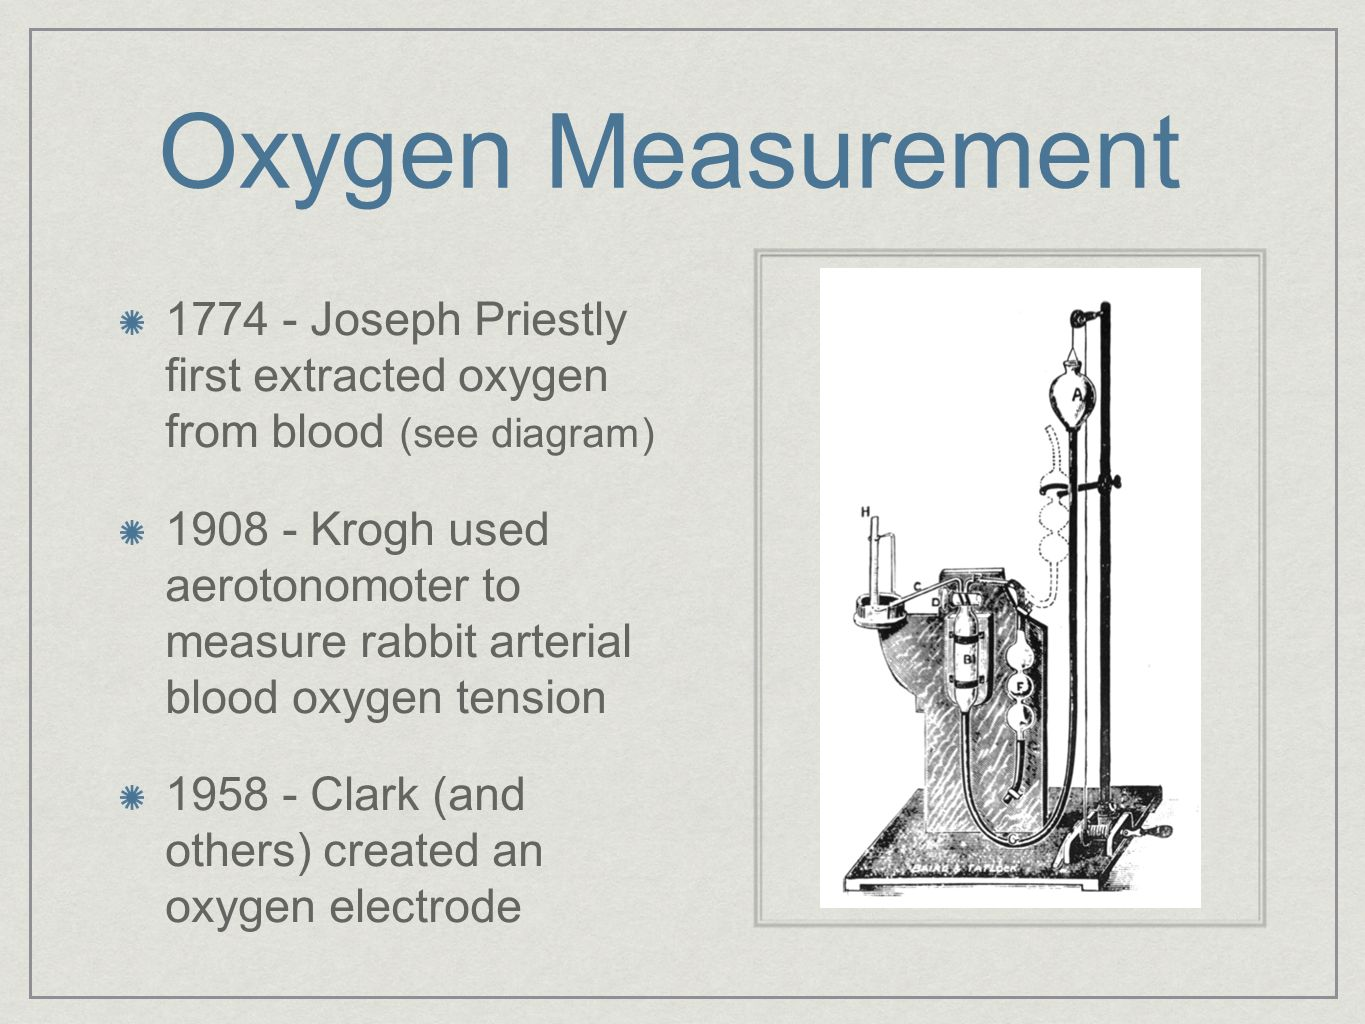 Oxygen Measurement 1774 - Joseph Priestly first extracted oxygen from blood (see diagram)